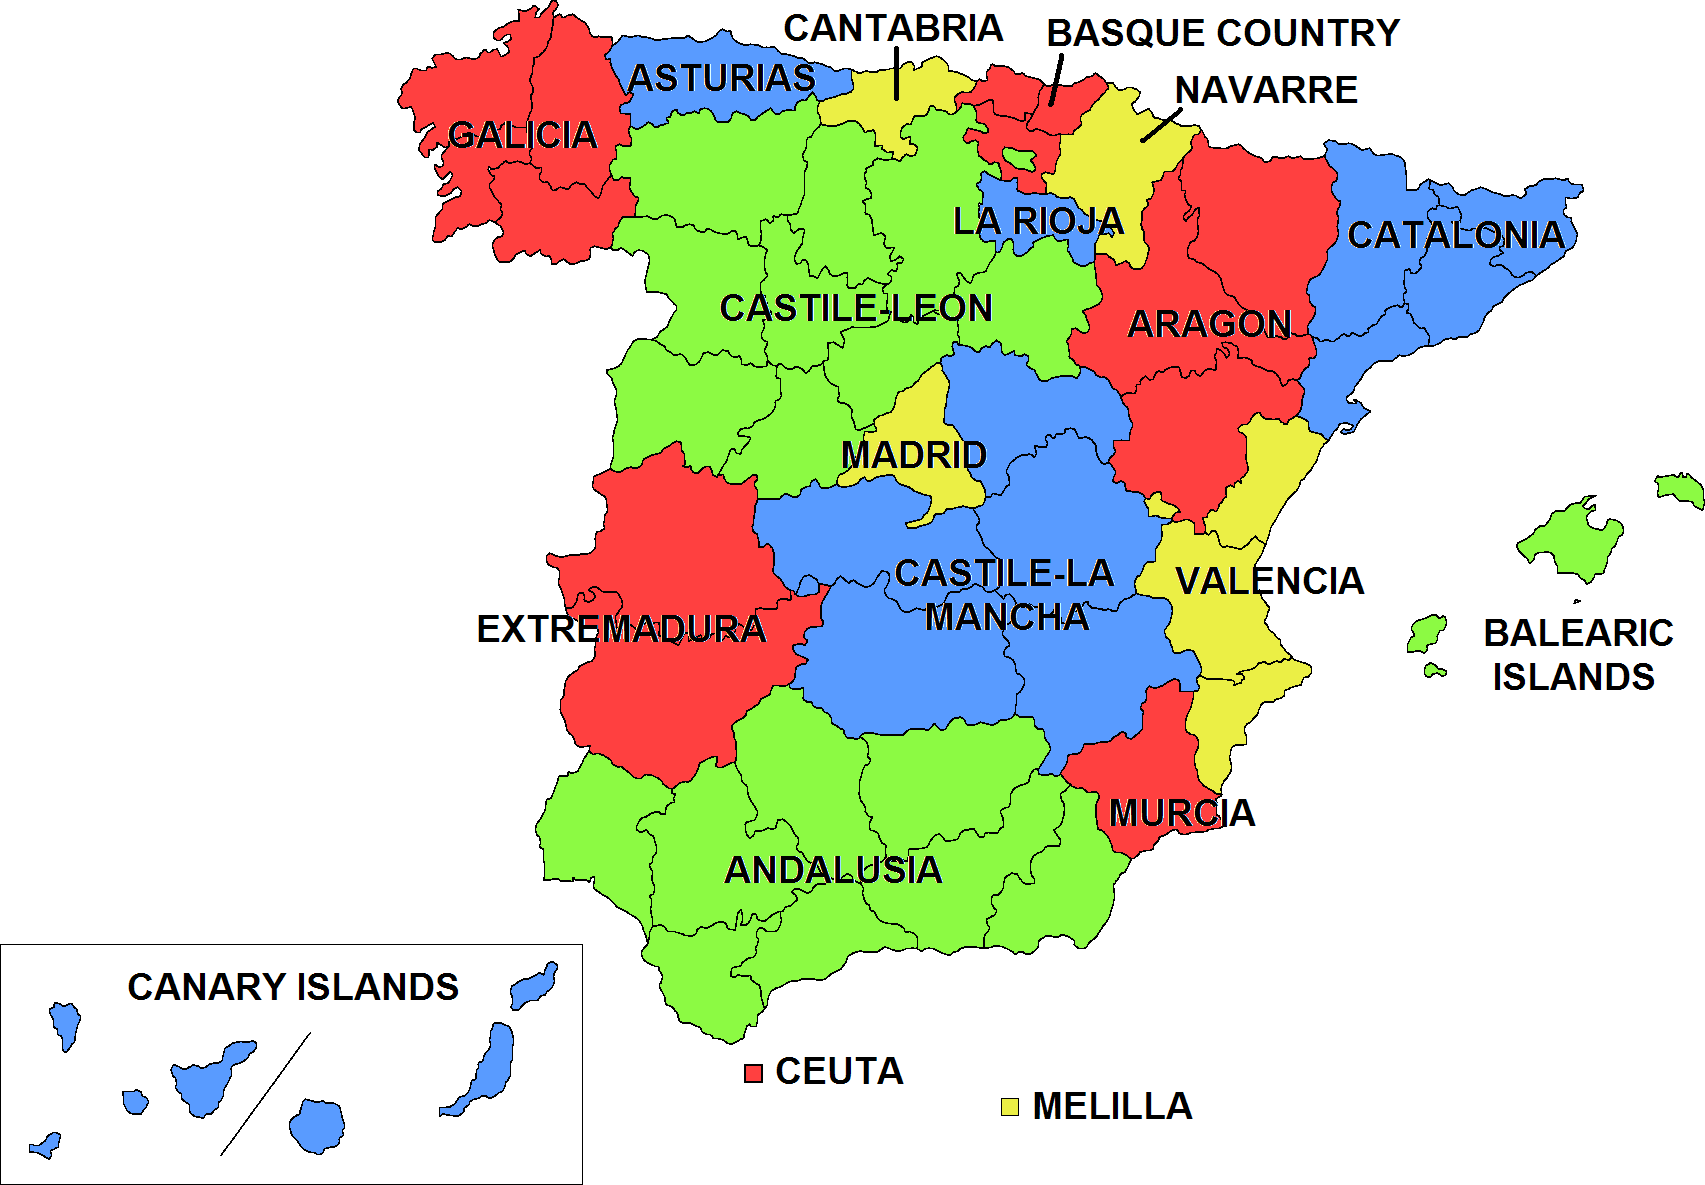 HttpsuploadwikimediaorgwikipediacommonsaCcaaspainpng - Portugal map wikipedia